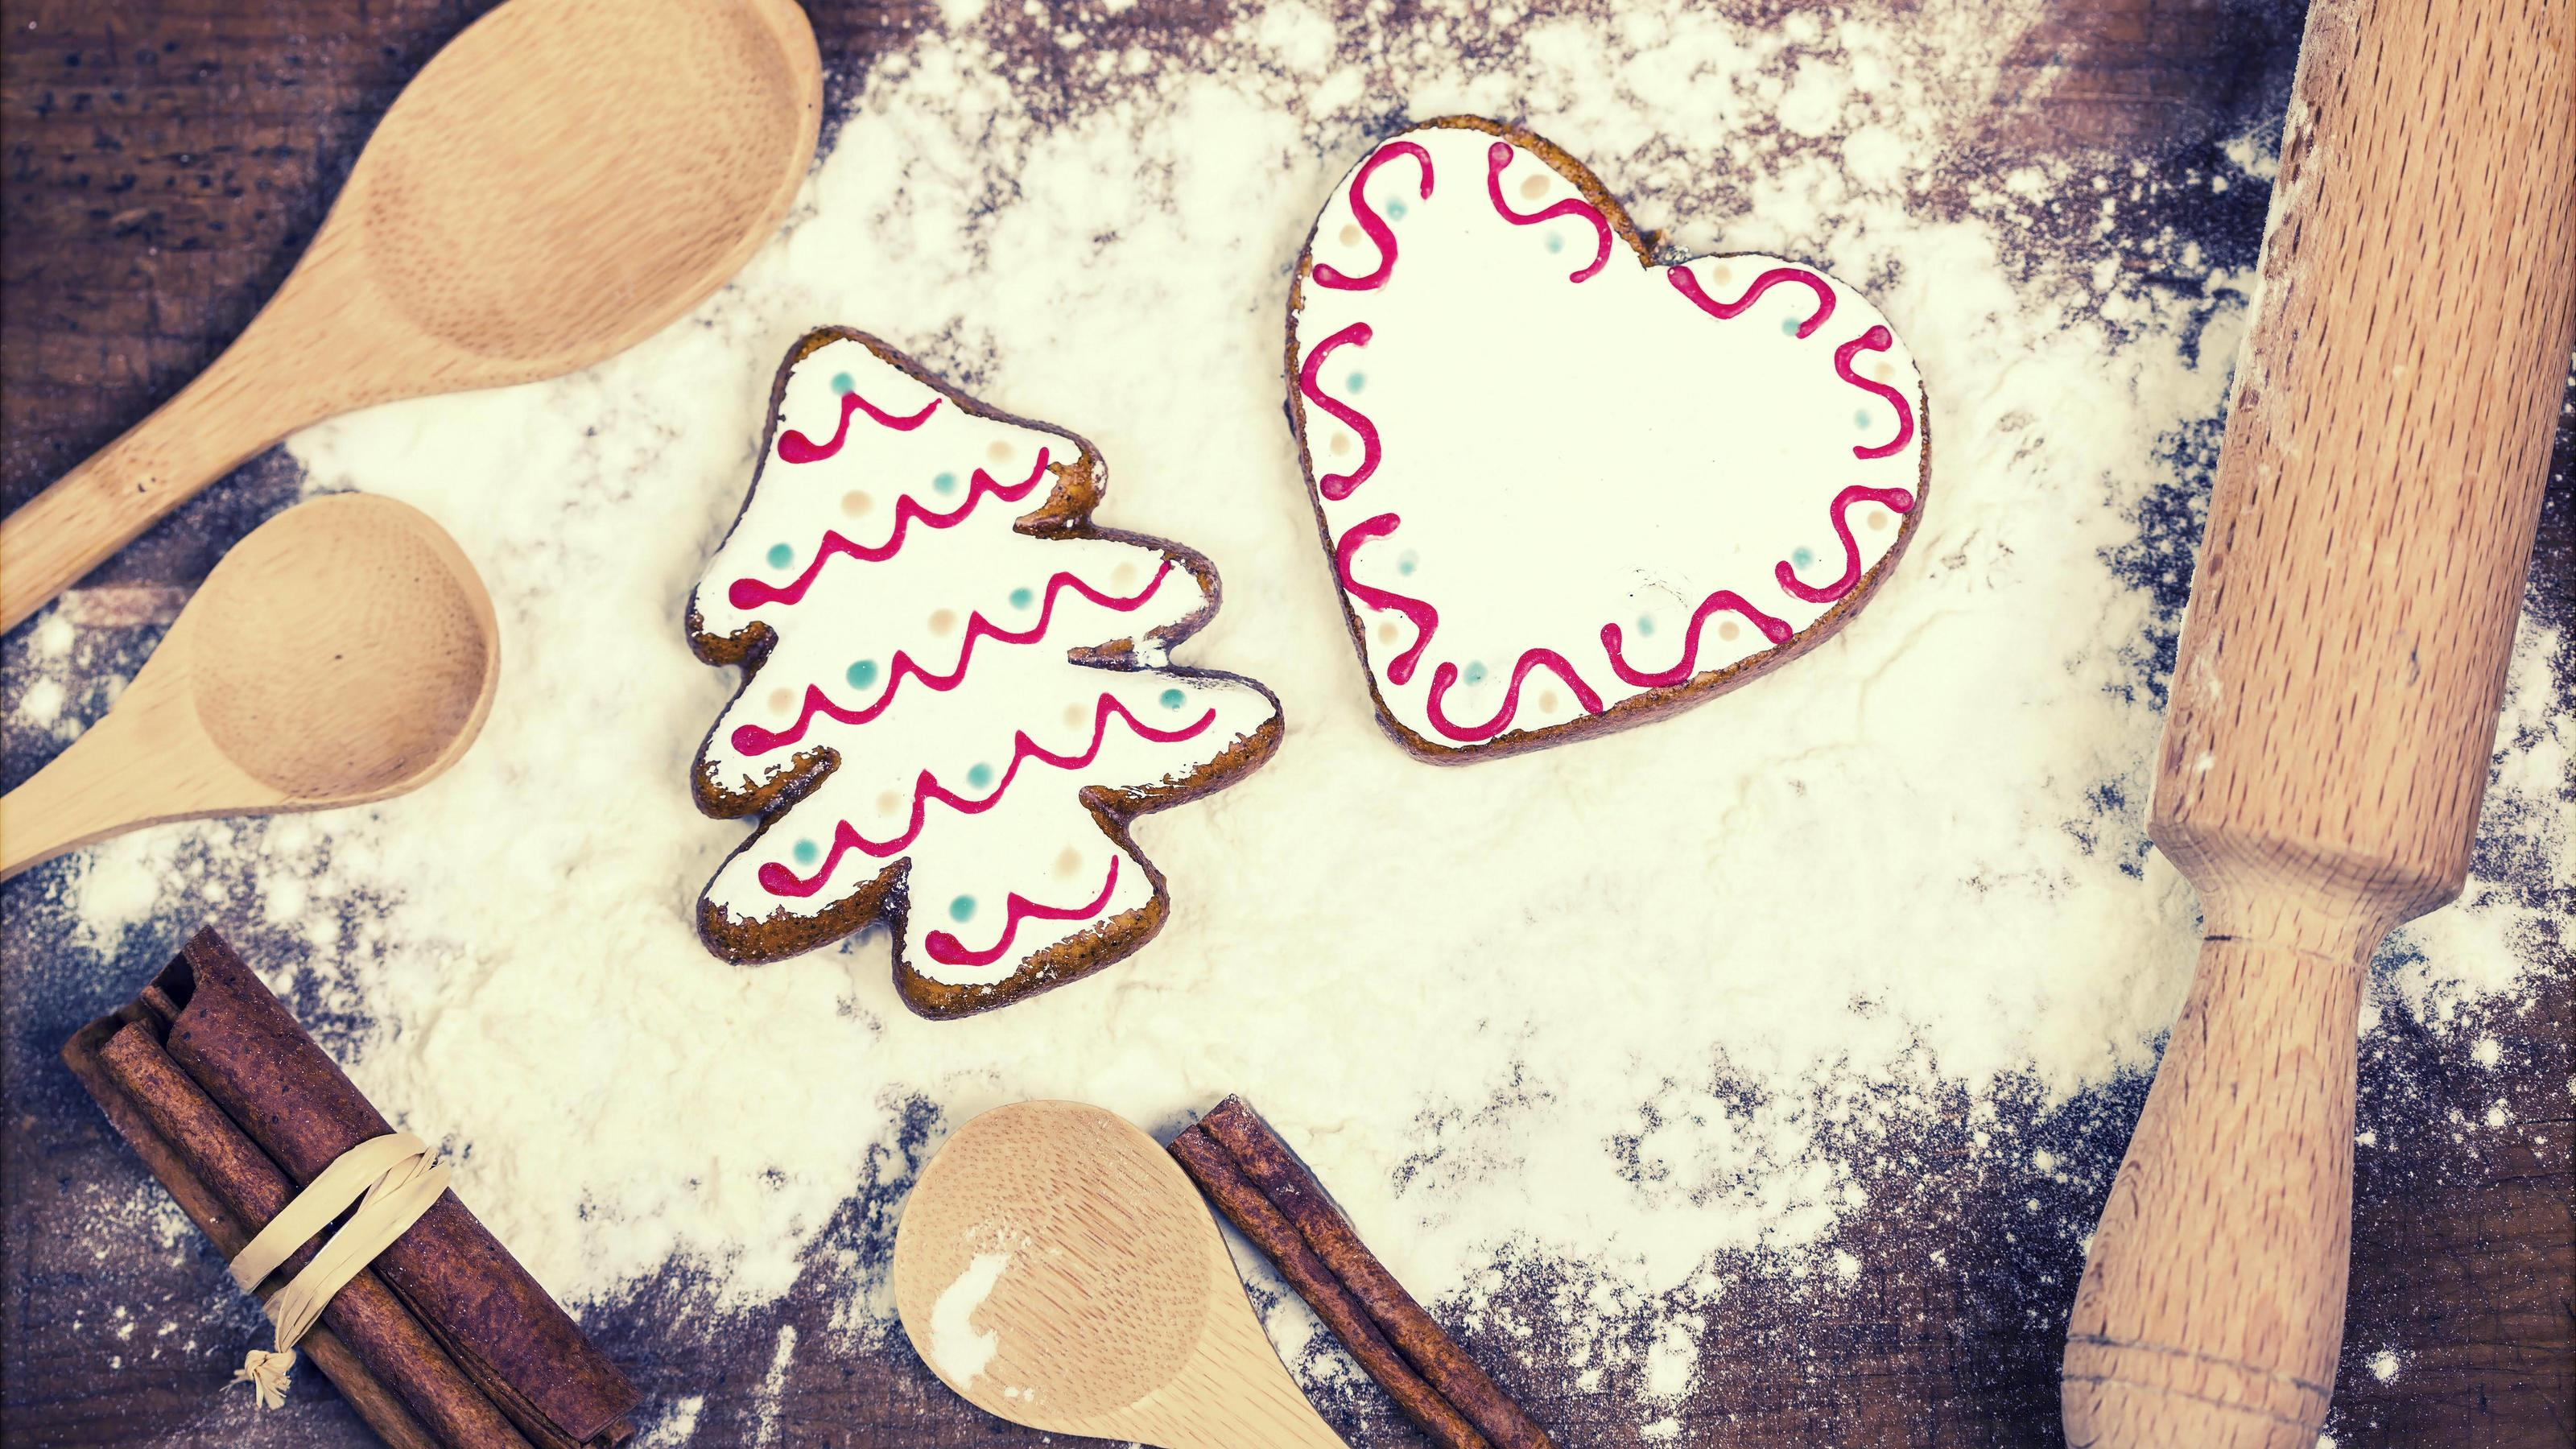 Gingerbread cookies, spices and flour over wooden cutting board PUBLICATIONxINxGERxSUIxAUTxONLY Copyright: xerika8213x